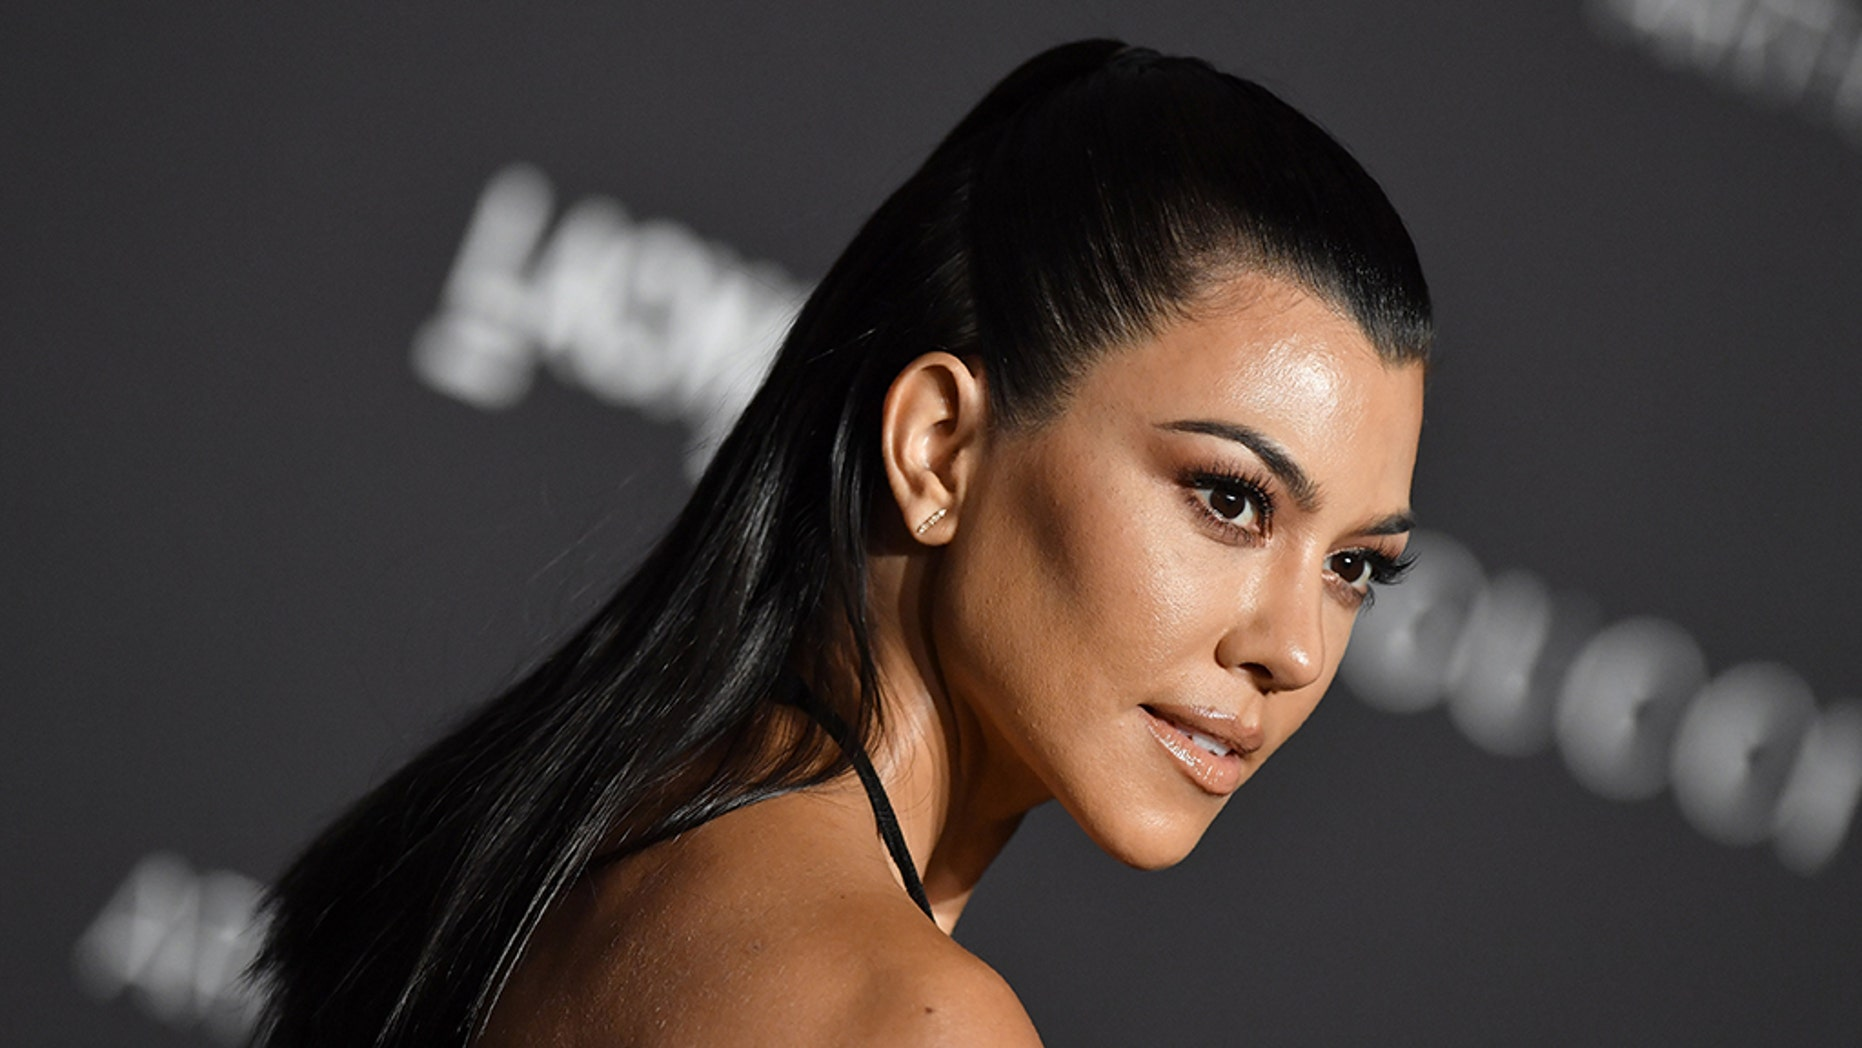 Kourtney Kardashian had a simple reply Friday to an Instagram follower who appeared to mockingly question a photo of her posing in lingerie.